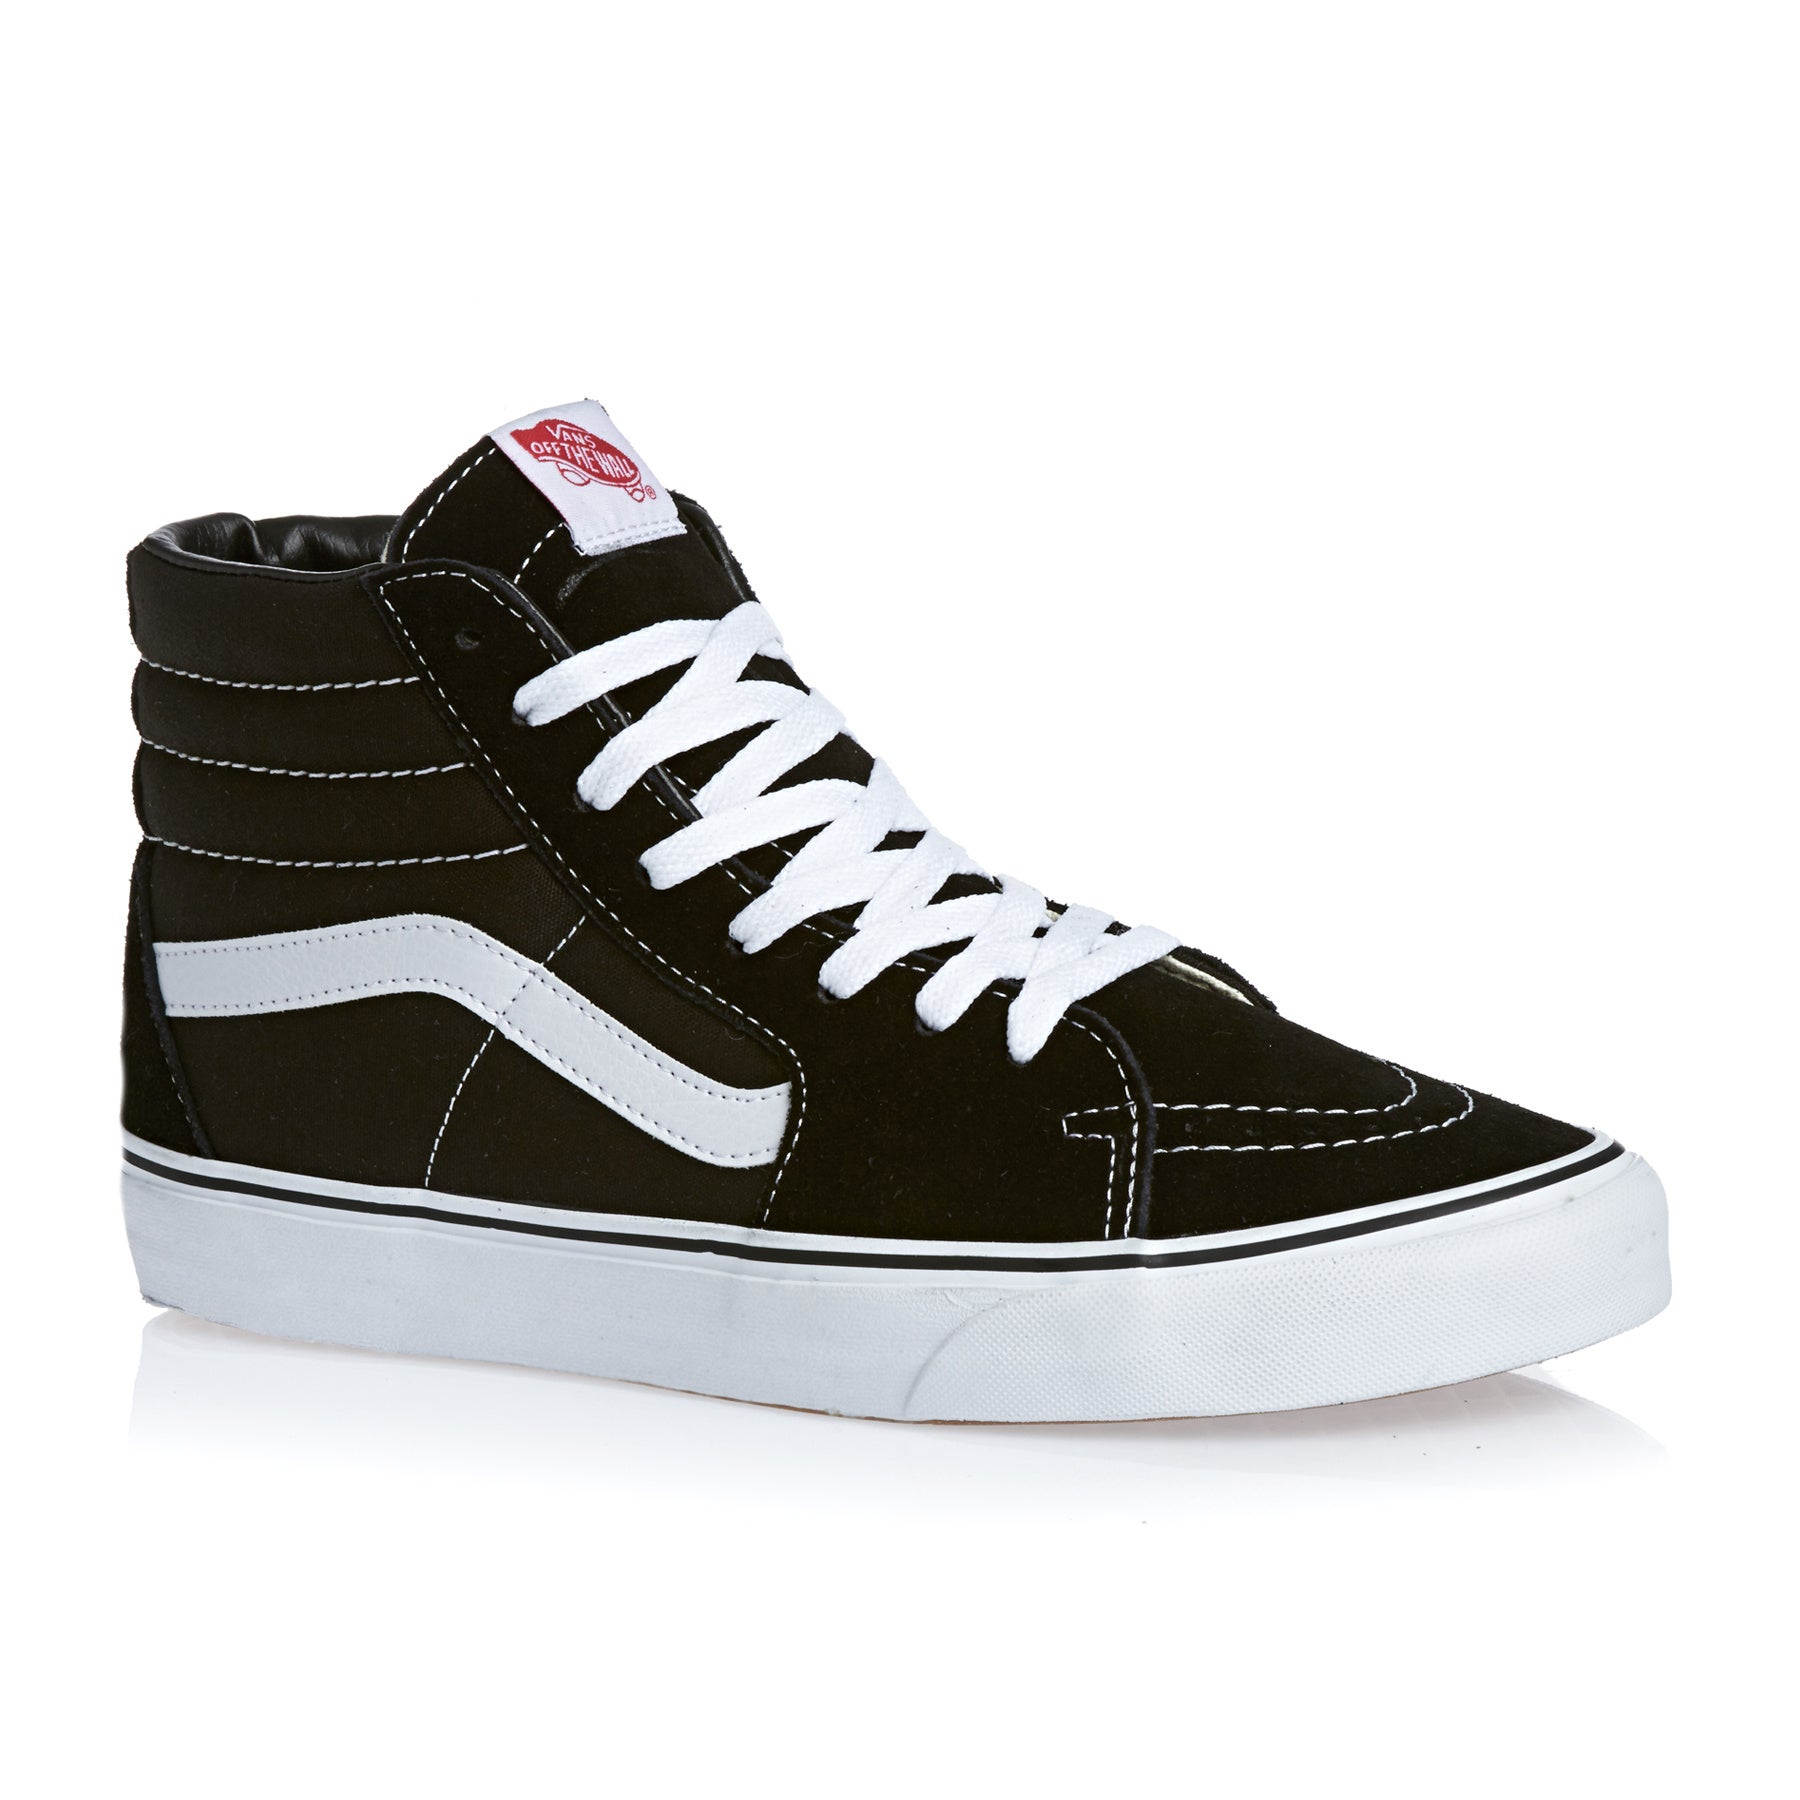 12136daff3 Vans Sk8 Hi Shoes available from Surfdome